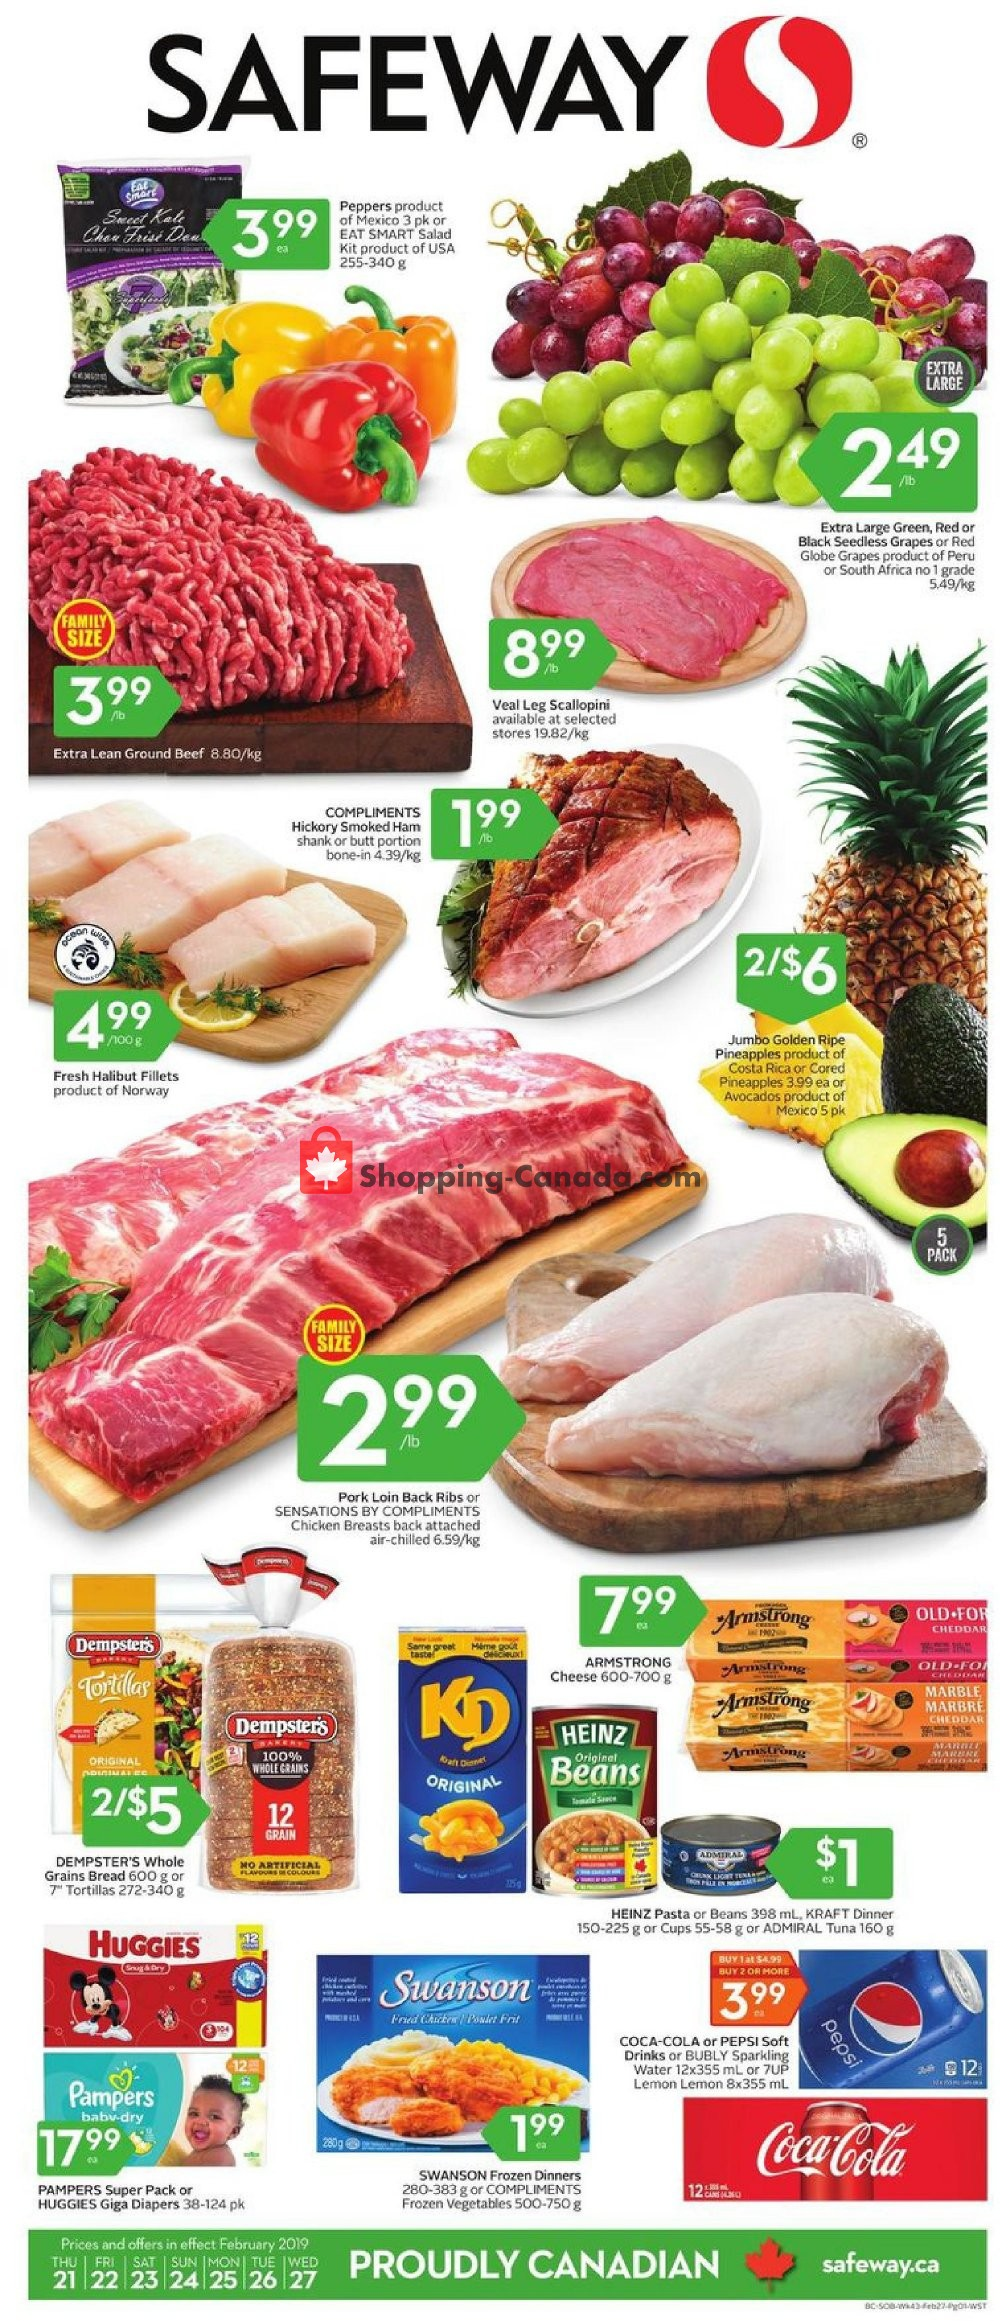 Flyer Safeway Canada - from Thursday February 21, 2019 to Wednesday February 27, 2019